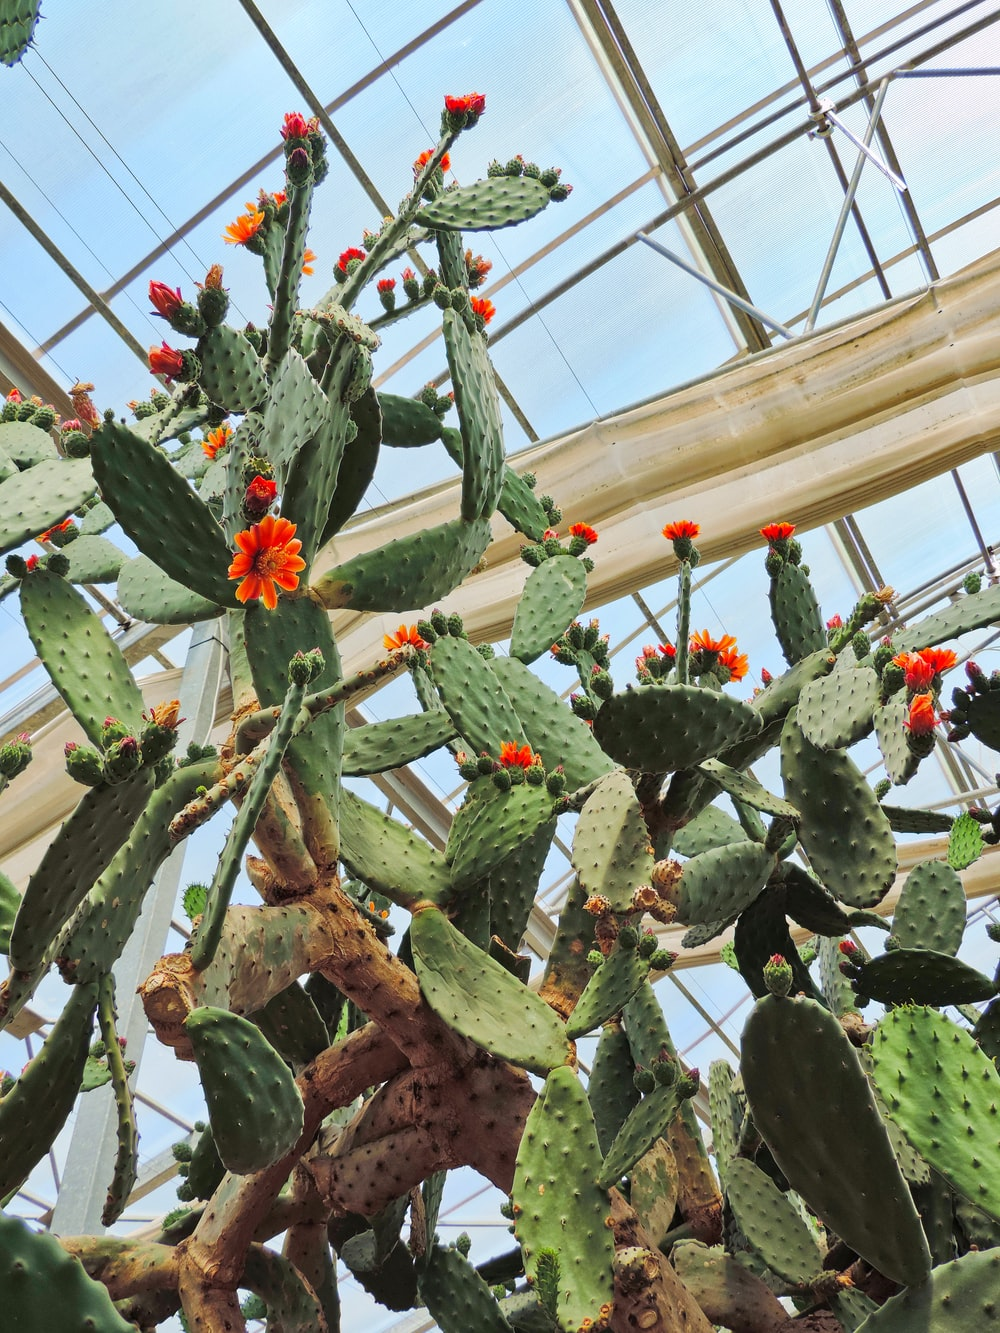 green cactus plant with flowers